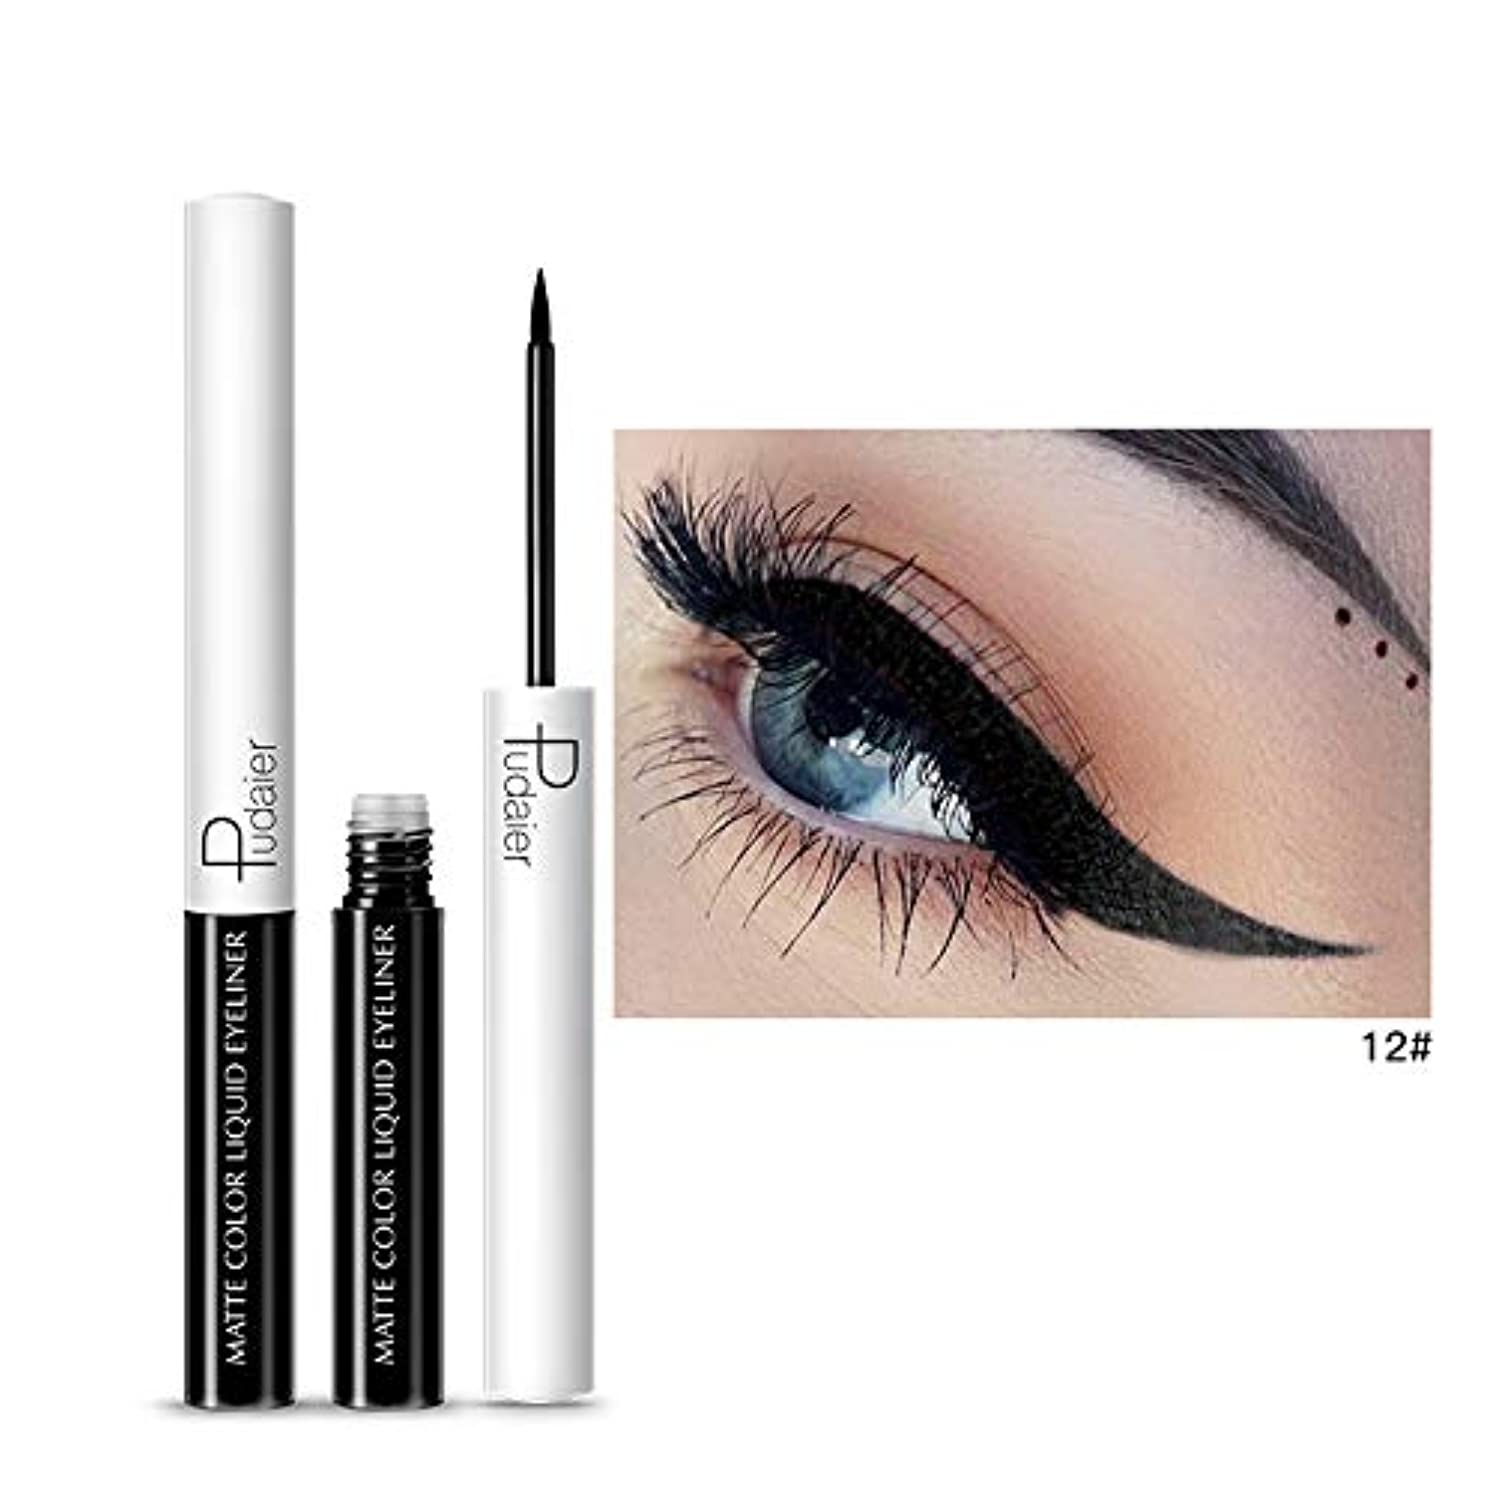 15 Colors Matte Colorful Liquid Eyeliner Waterproof Not Dizzy Long Lasting Quick Dry Brighten Smooth Eye Liner Makeup E3007 A12